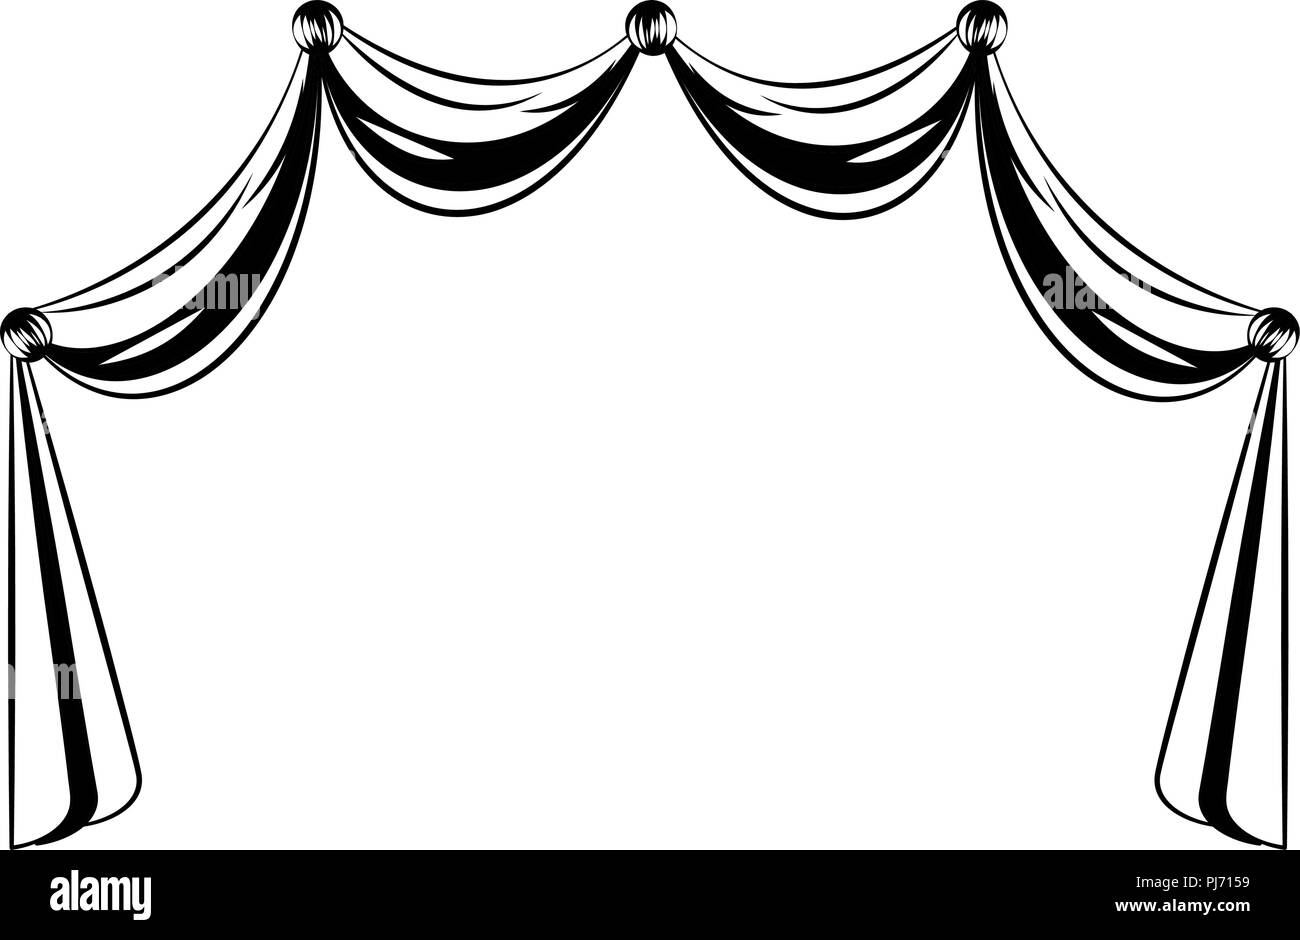 hight resolution of germany curtains isolated in black and white stock image